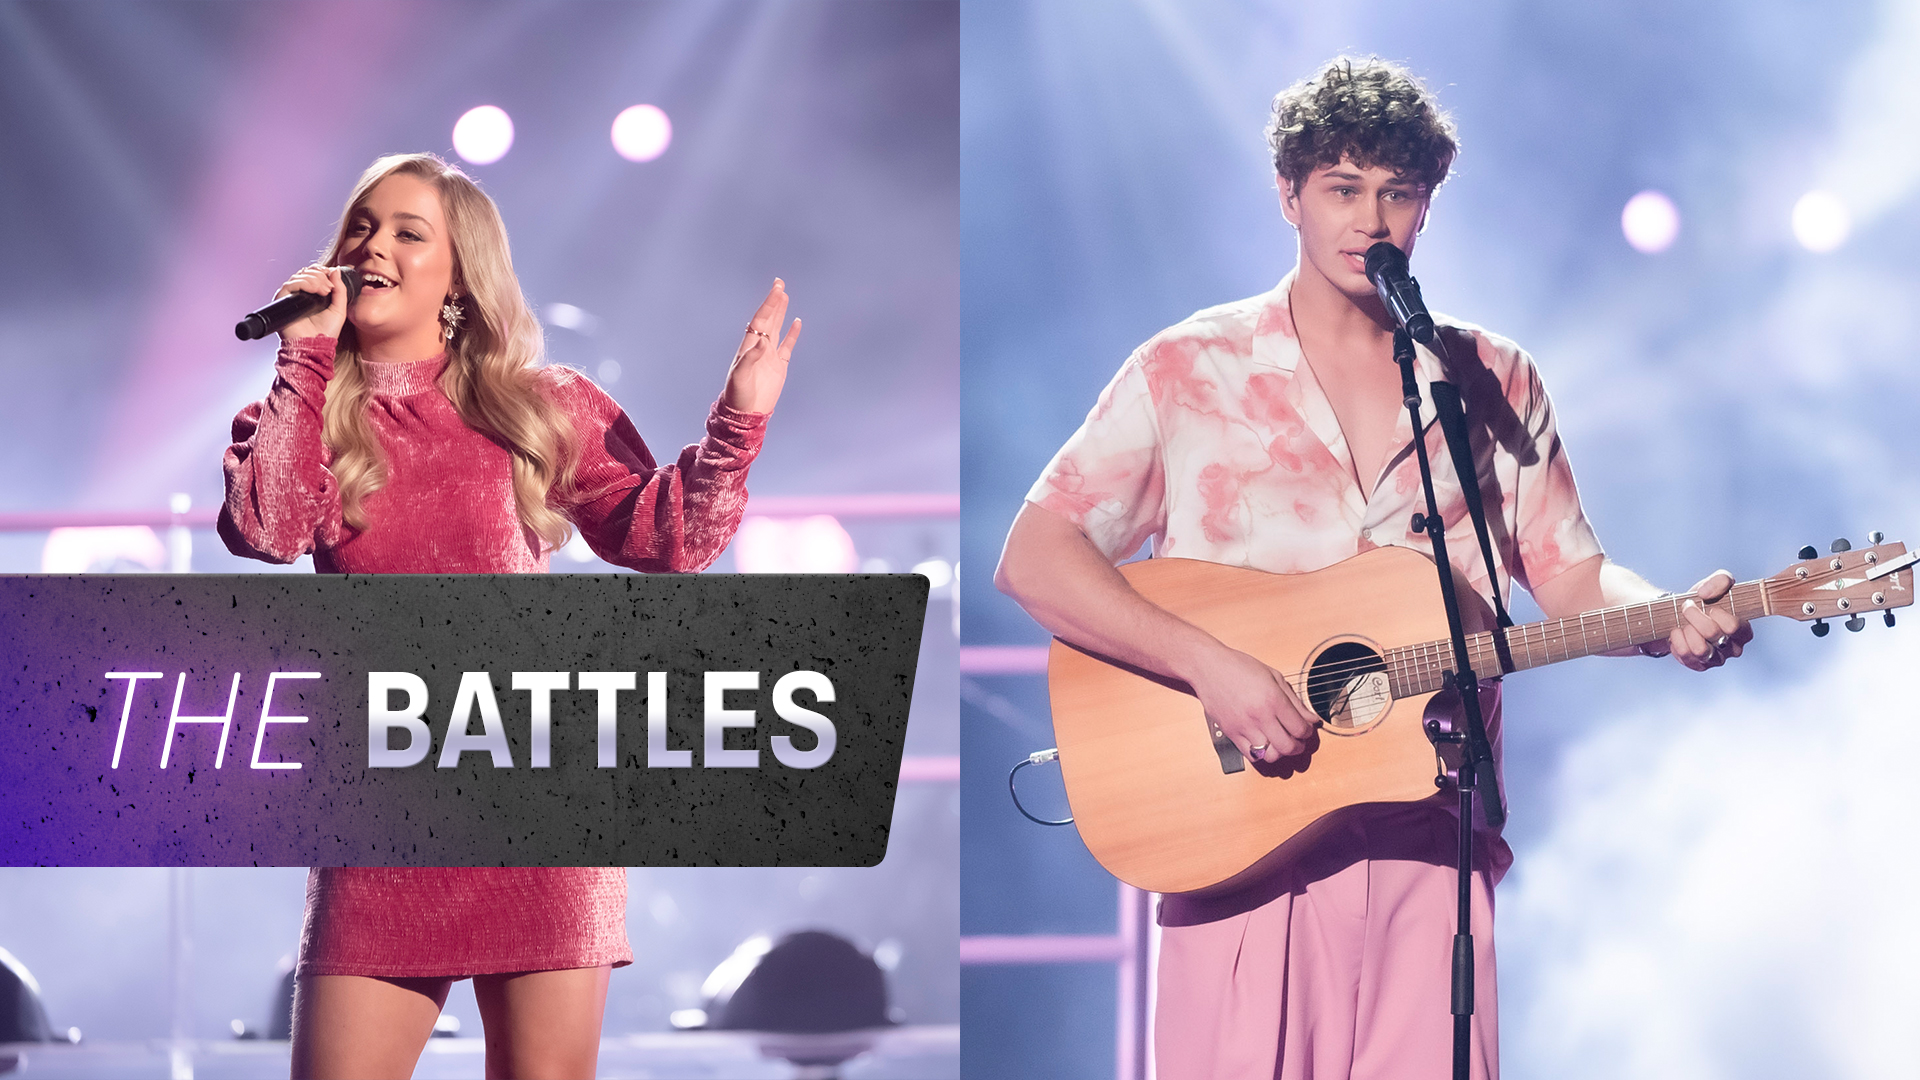 The Battles: Janie vs Matt 'Lover'